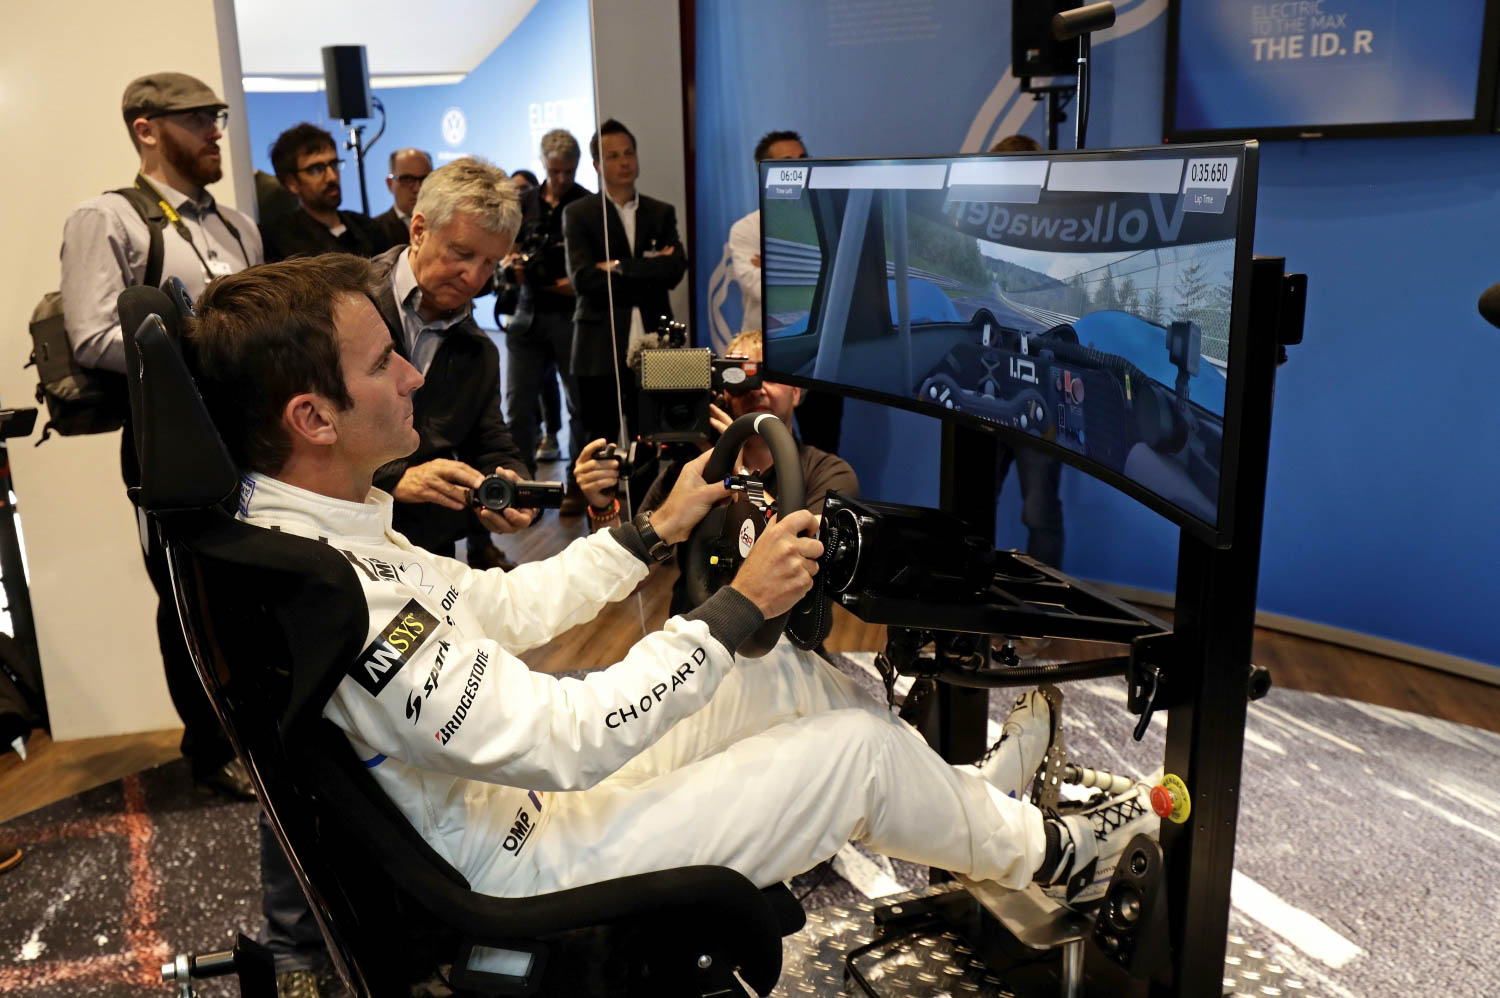 Volkswagen ID. R electric race car driving simulator